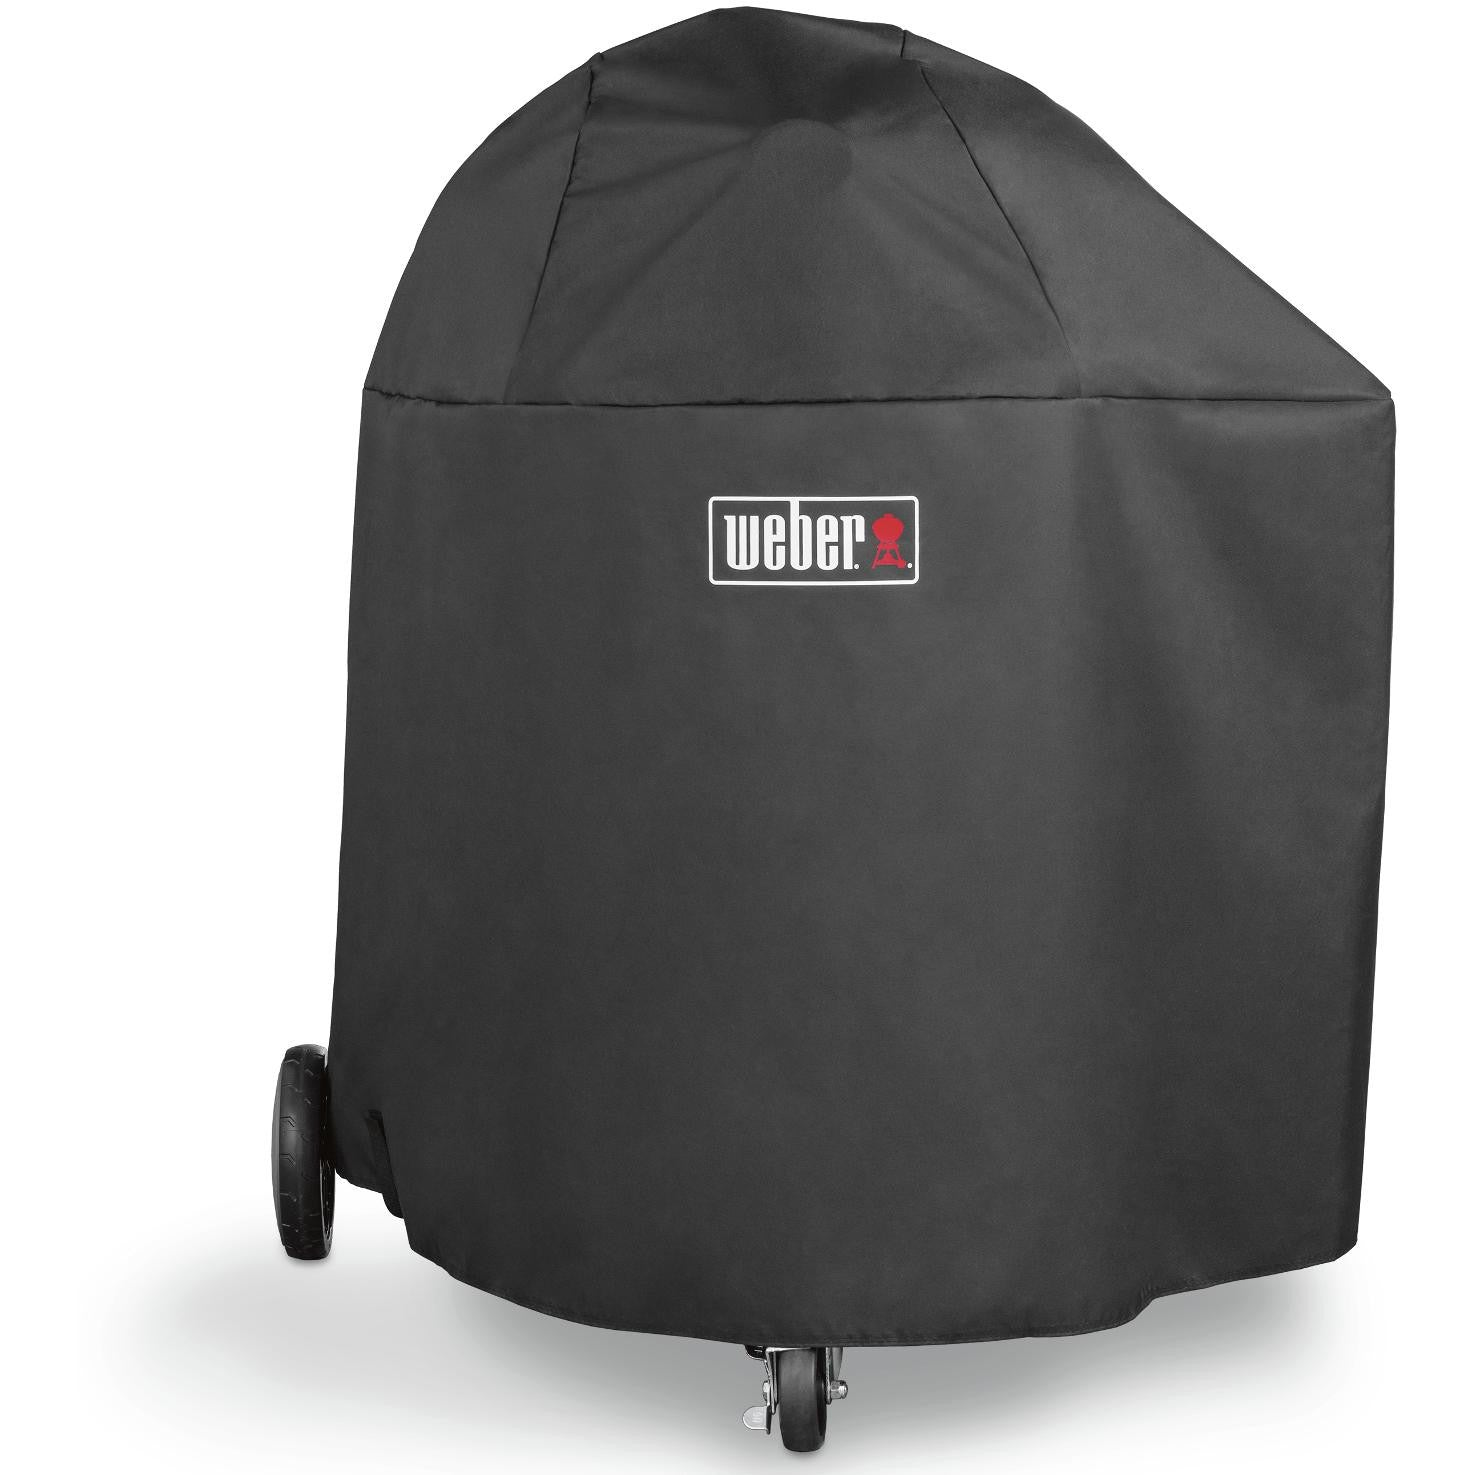 Weber 7173 Grill Cover For Summit Charcoal Grill